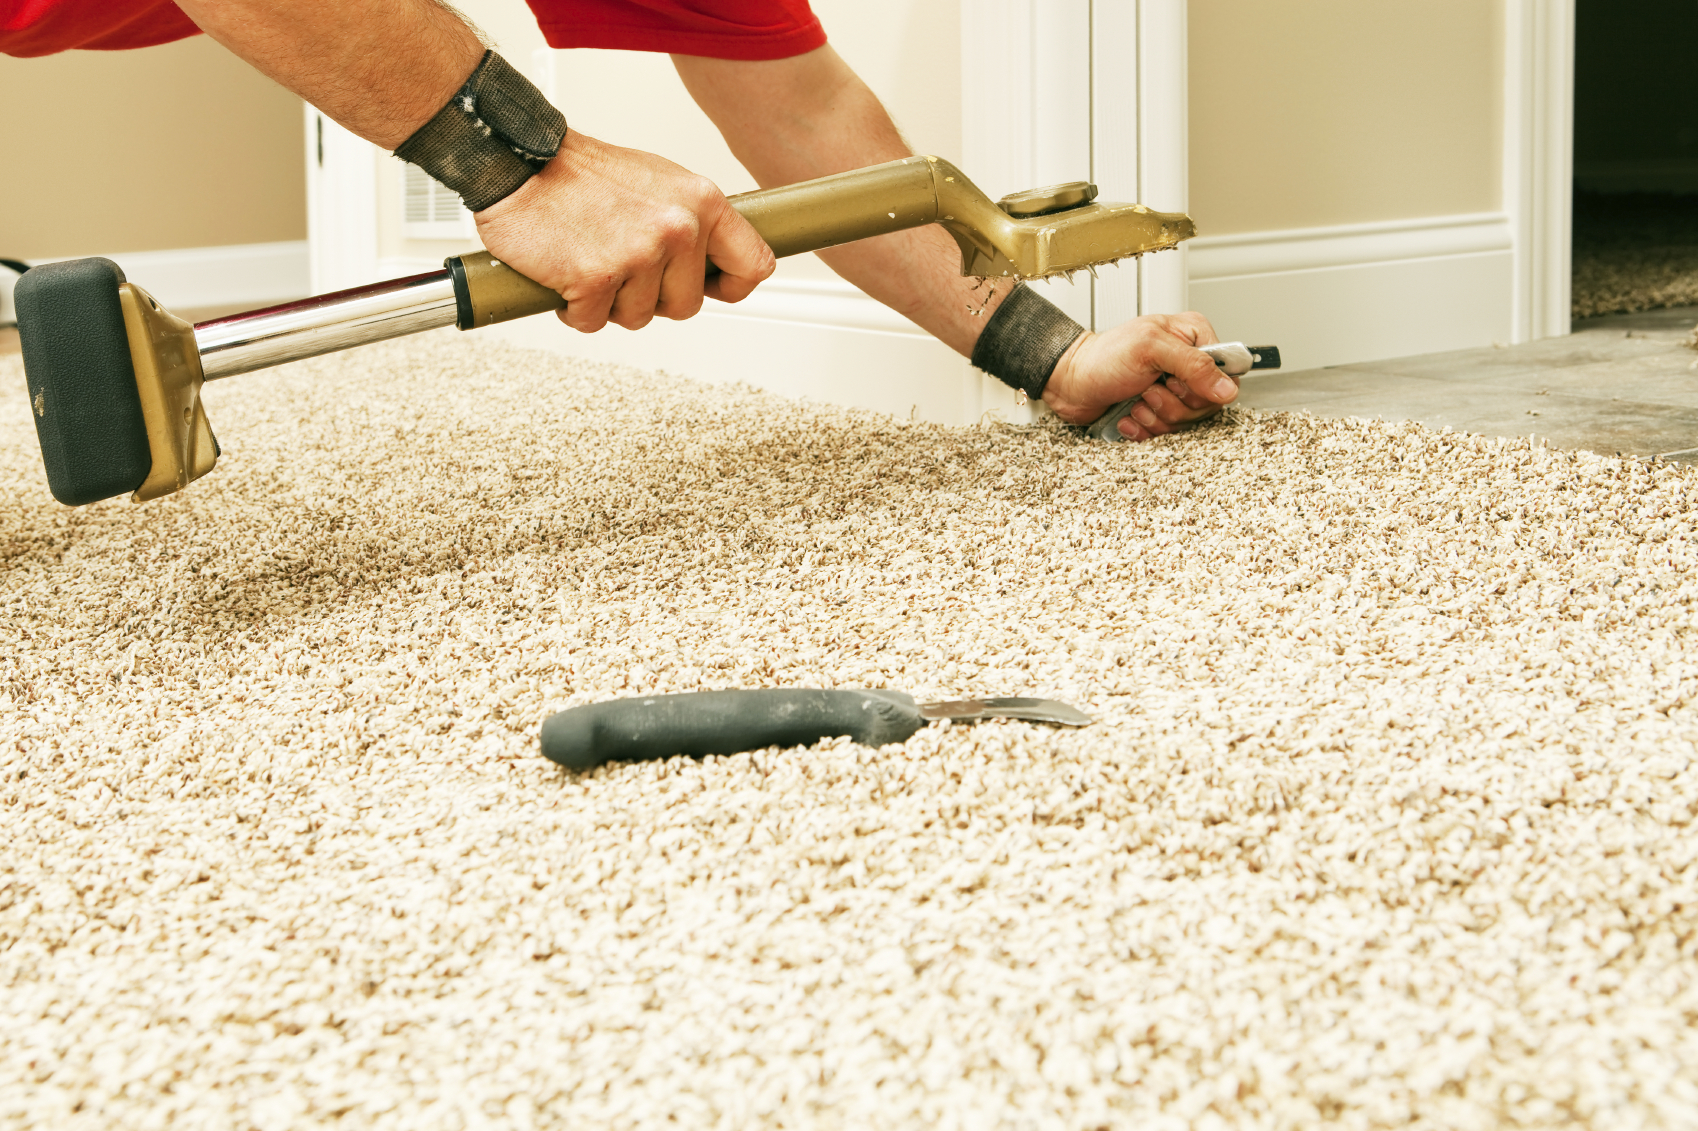 carpet seam repair san diego san diego carpet repair and carpet dyeing. Black Bedroom Furniture Sets. Home Design Ideas